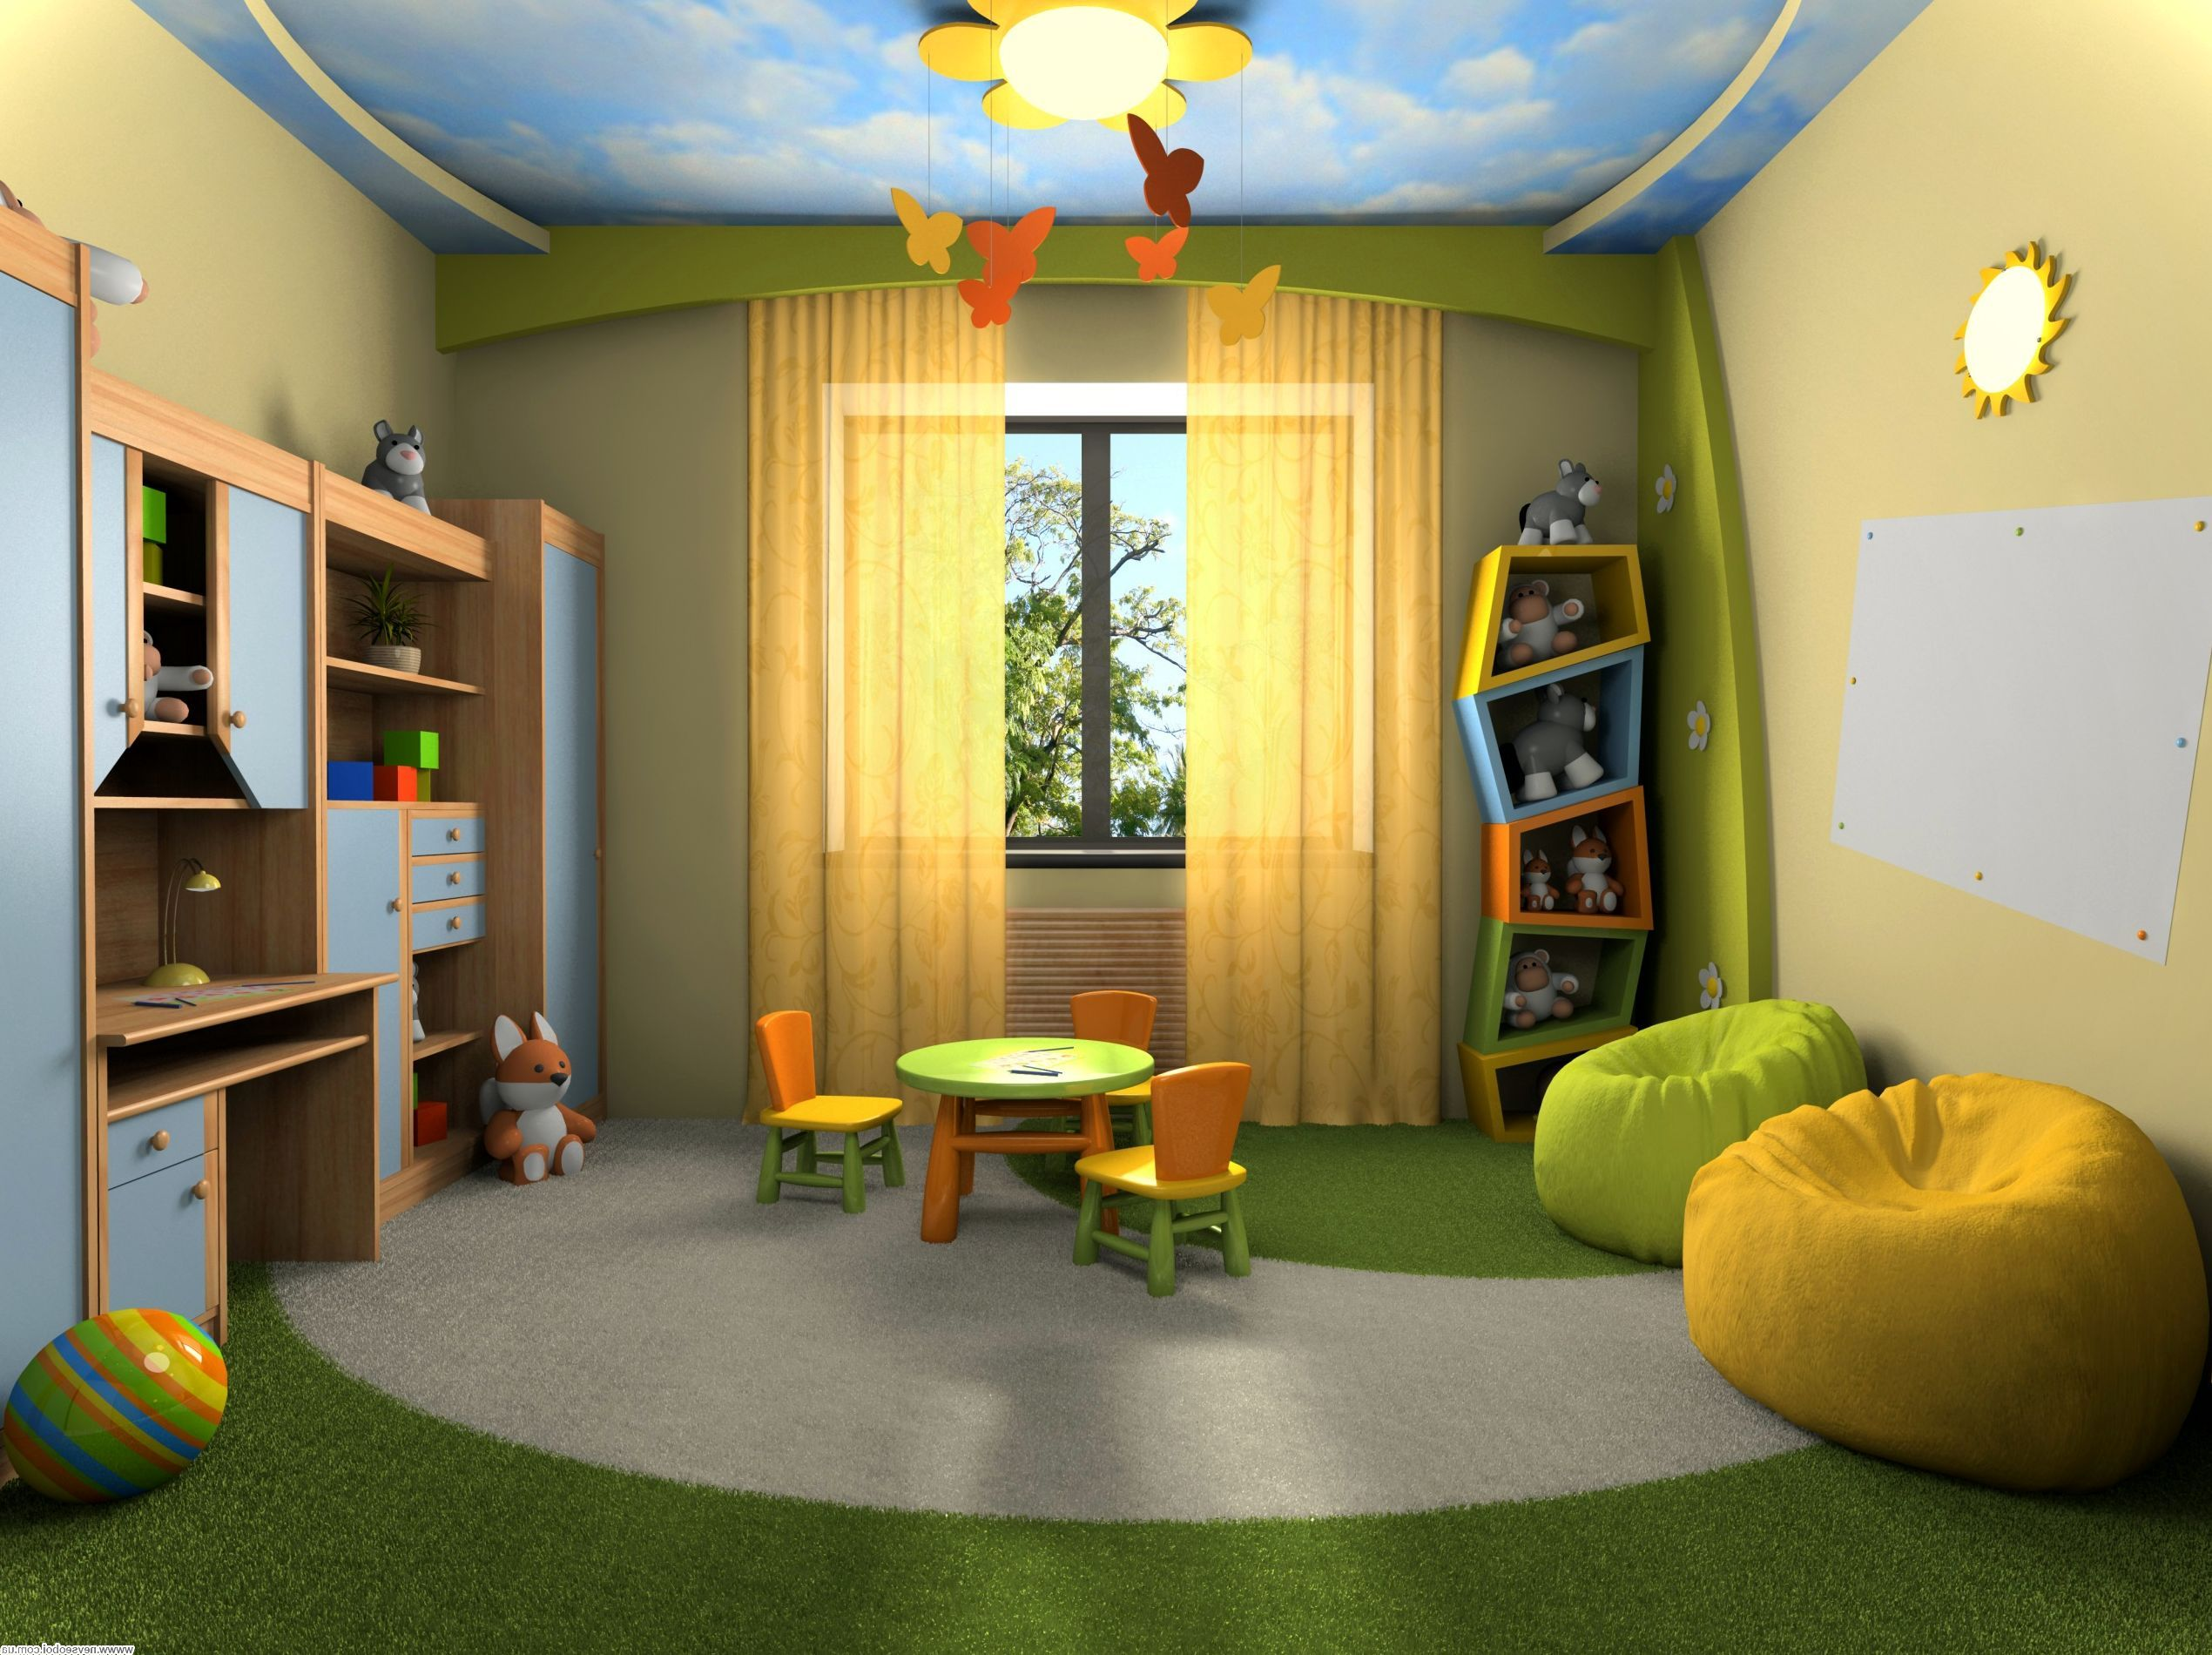 Cheerful Boys Themed Bedroom In Colorful Light Green Blue And Yellow - Kids-room-decorating-ideas-from-corazzin